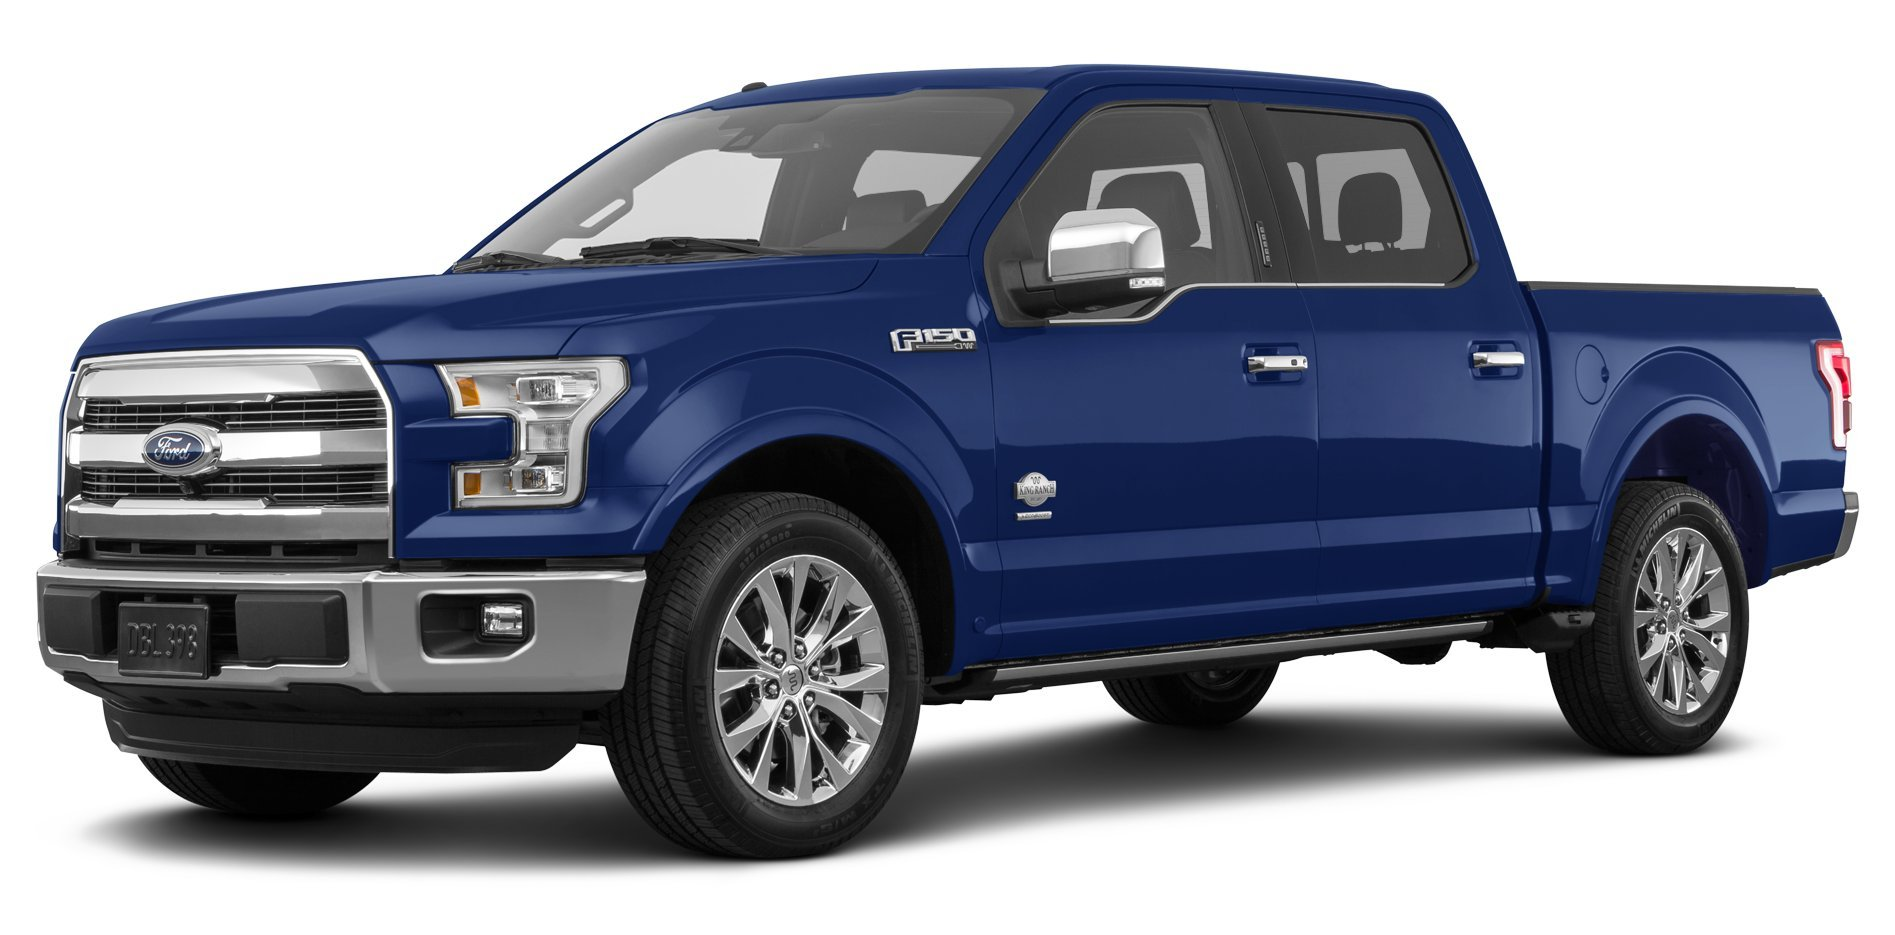 Ford F150 Wheels >> Amazon Com 2017 Ford F 150 Reviews Images And Specs Vehicles